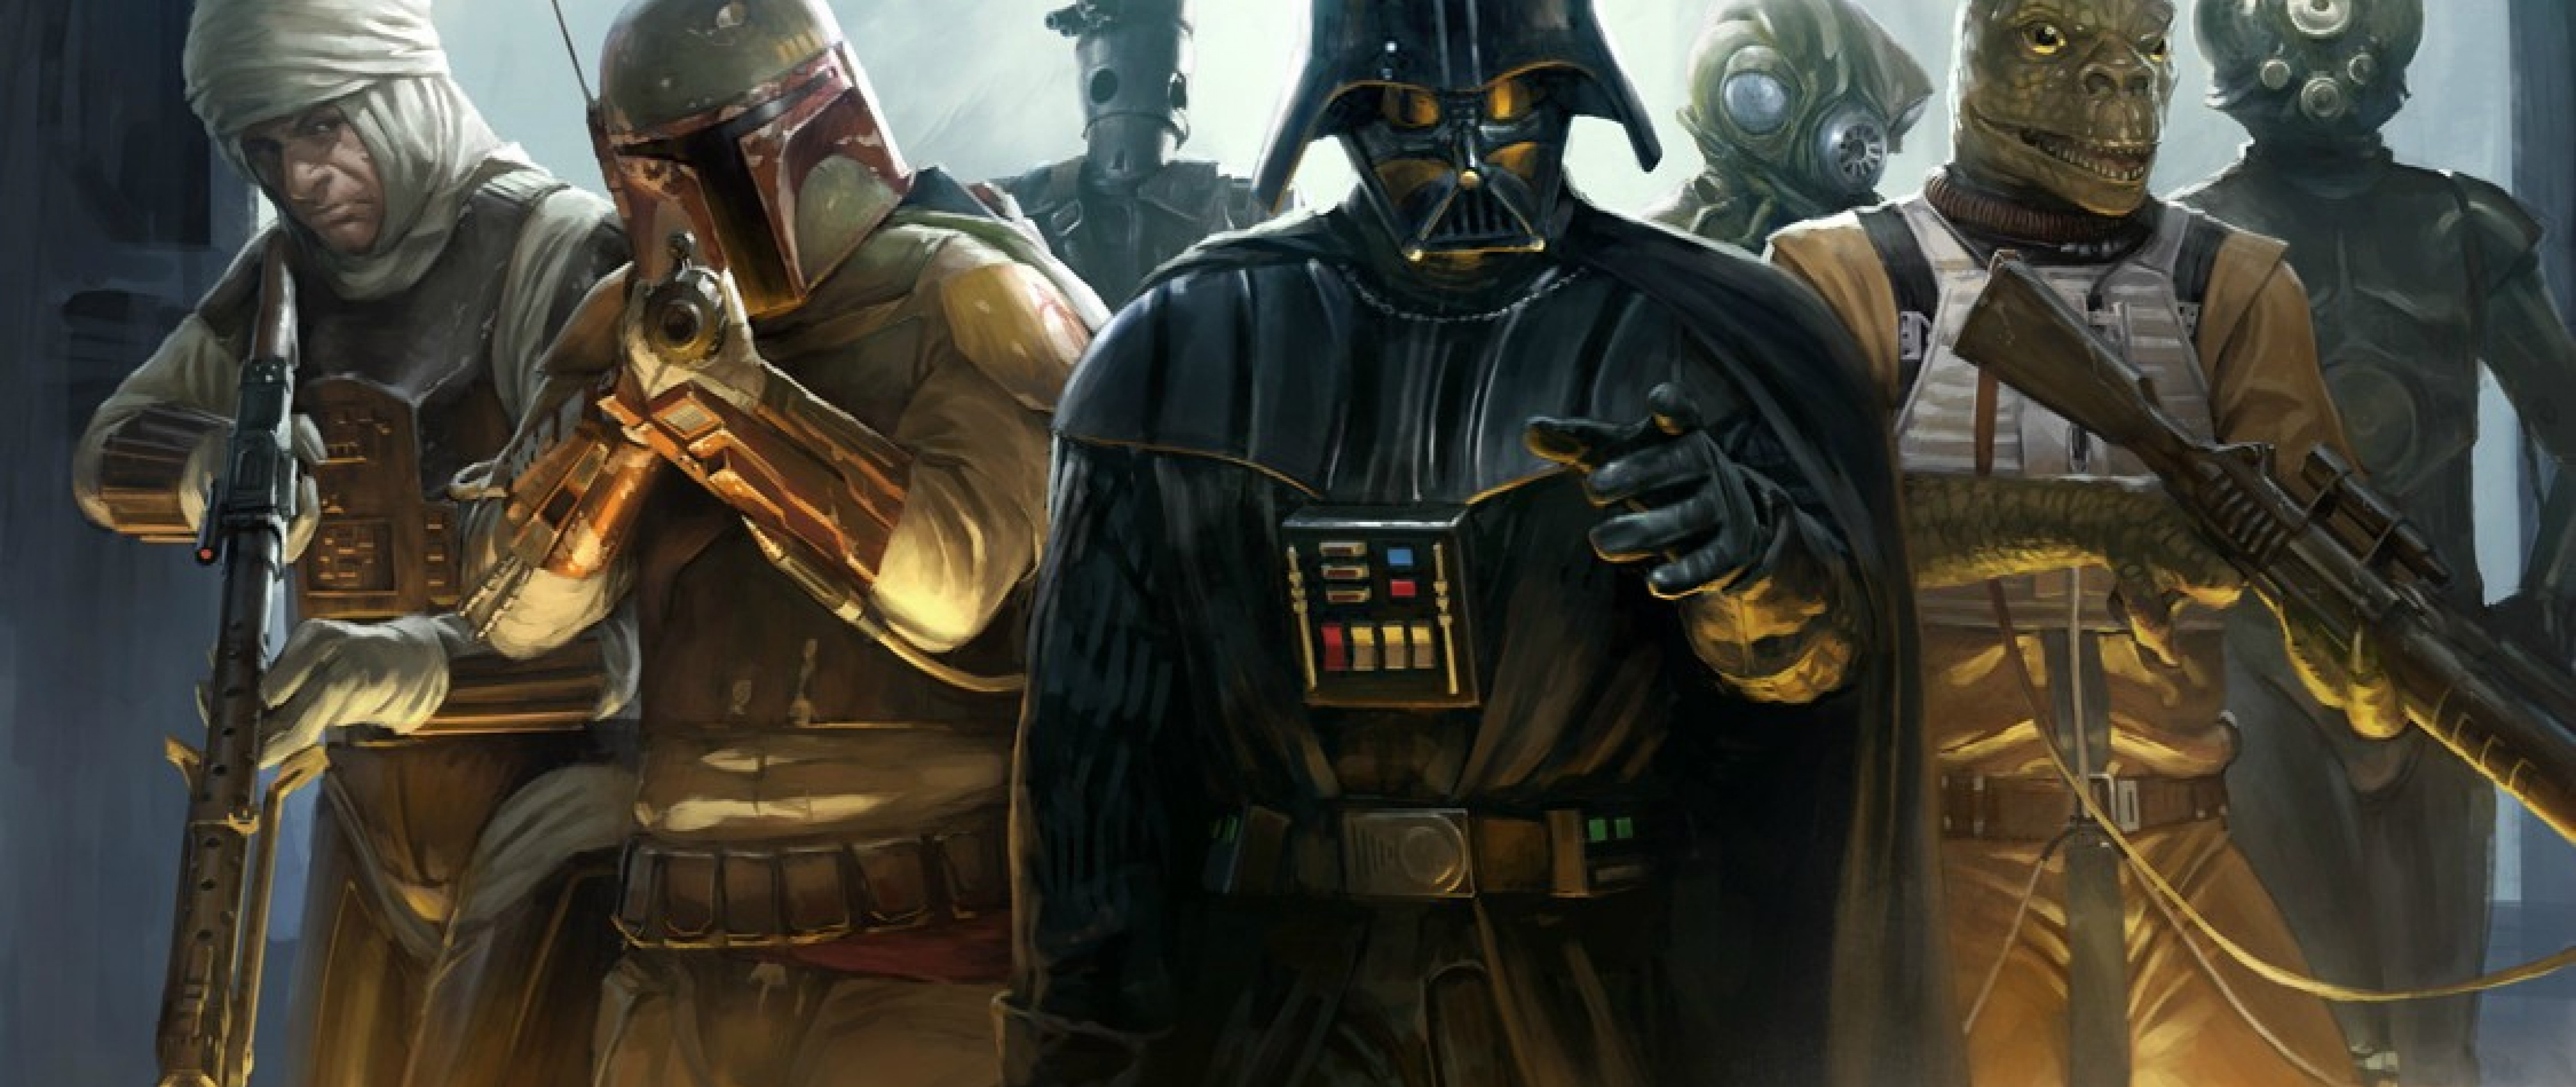 Cool Star Wars Bounty Hunters 2579598 Hd Wallpaper Backgrounds Download